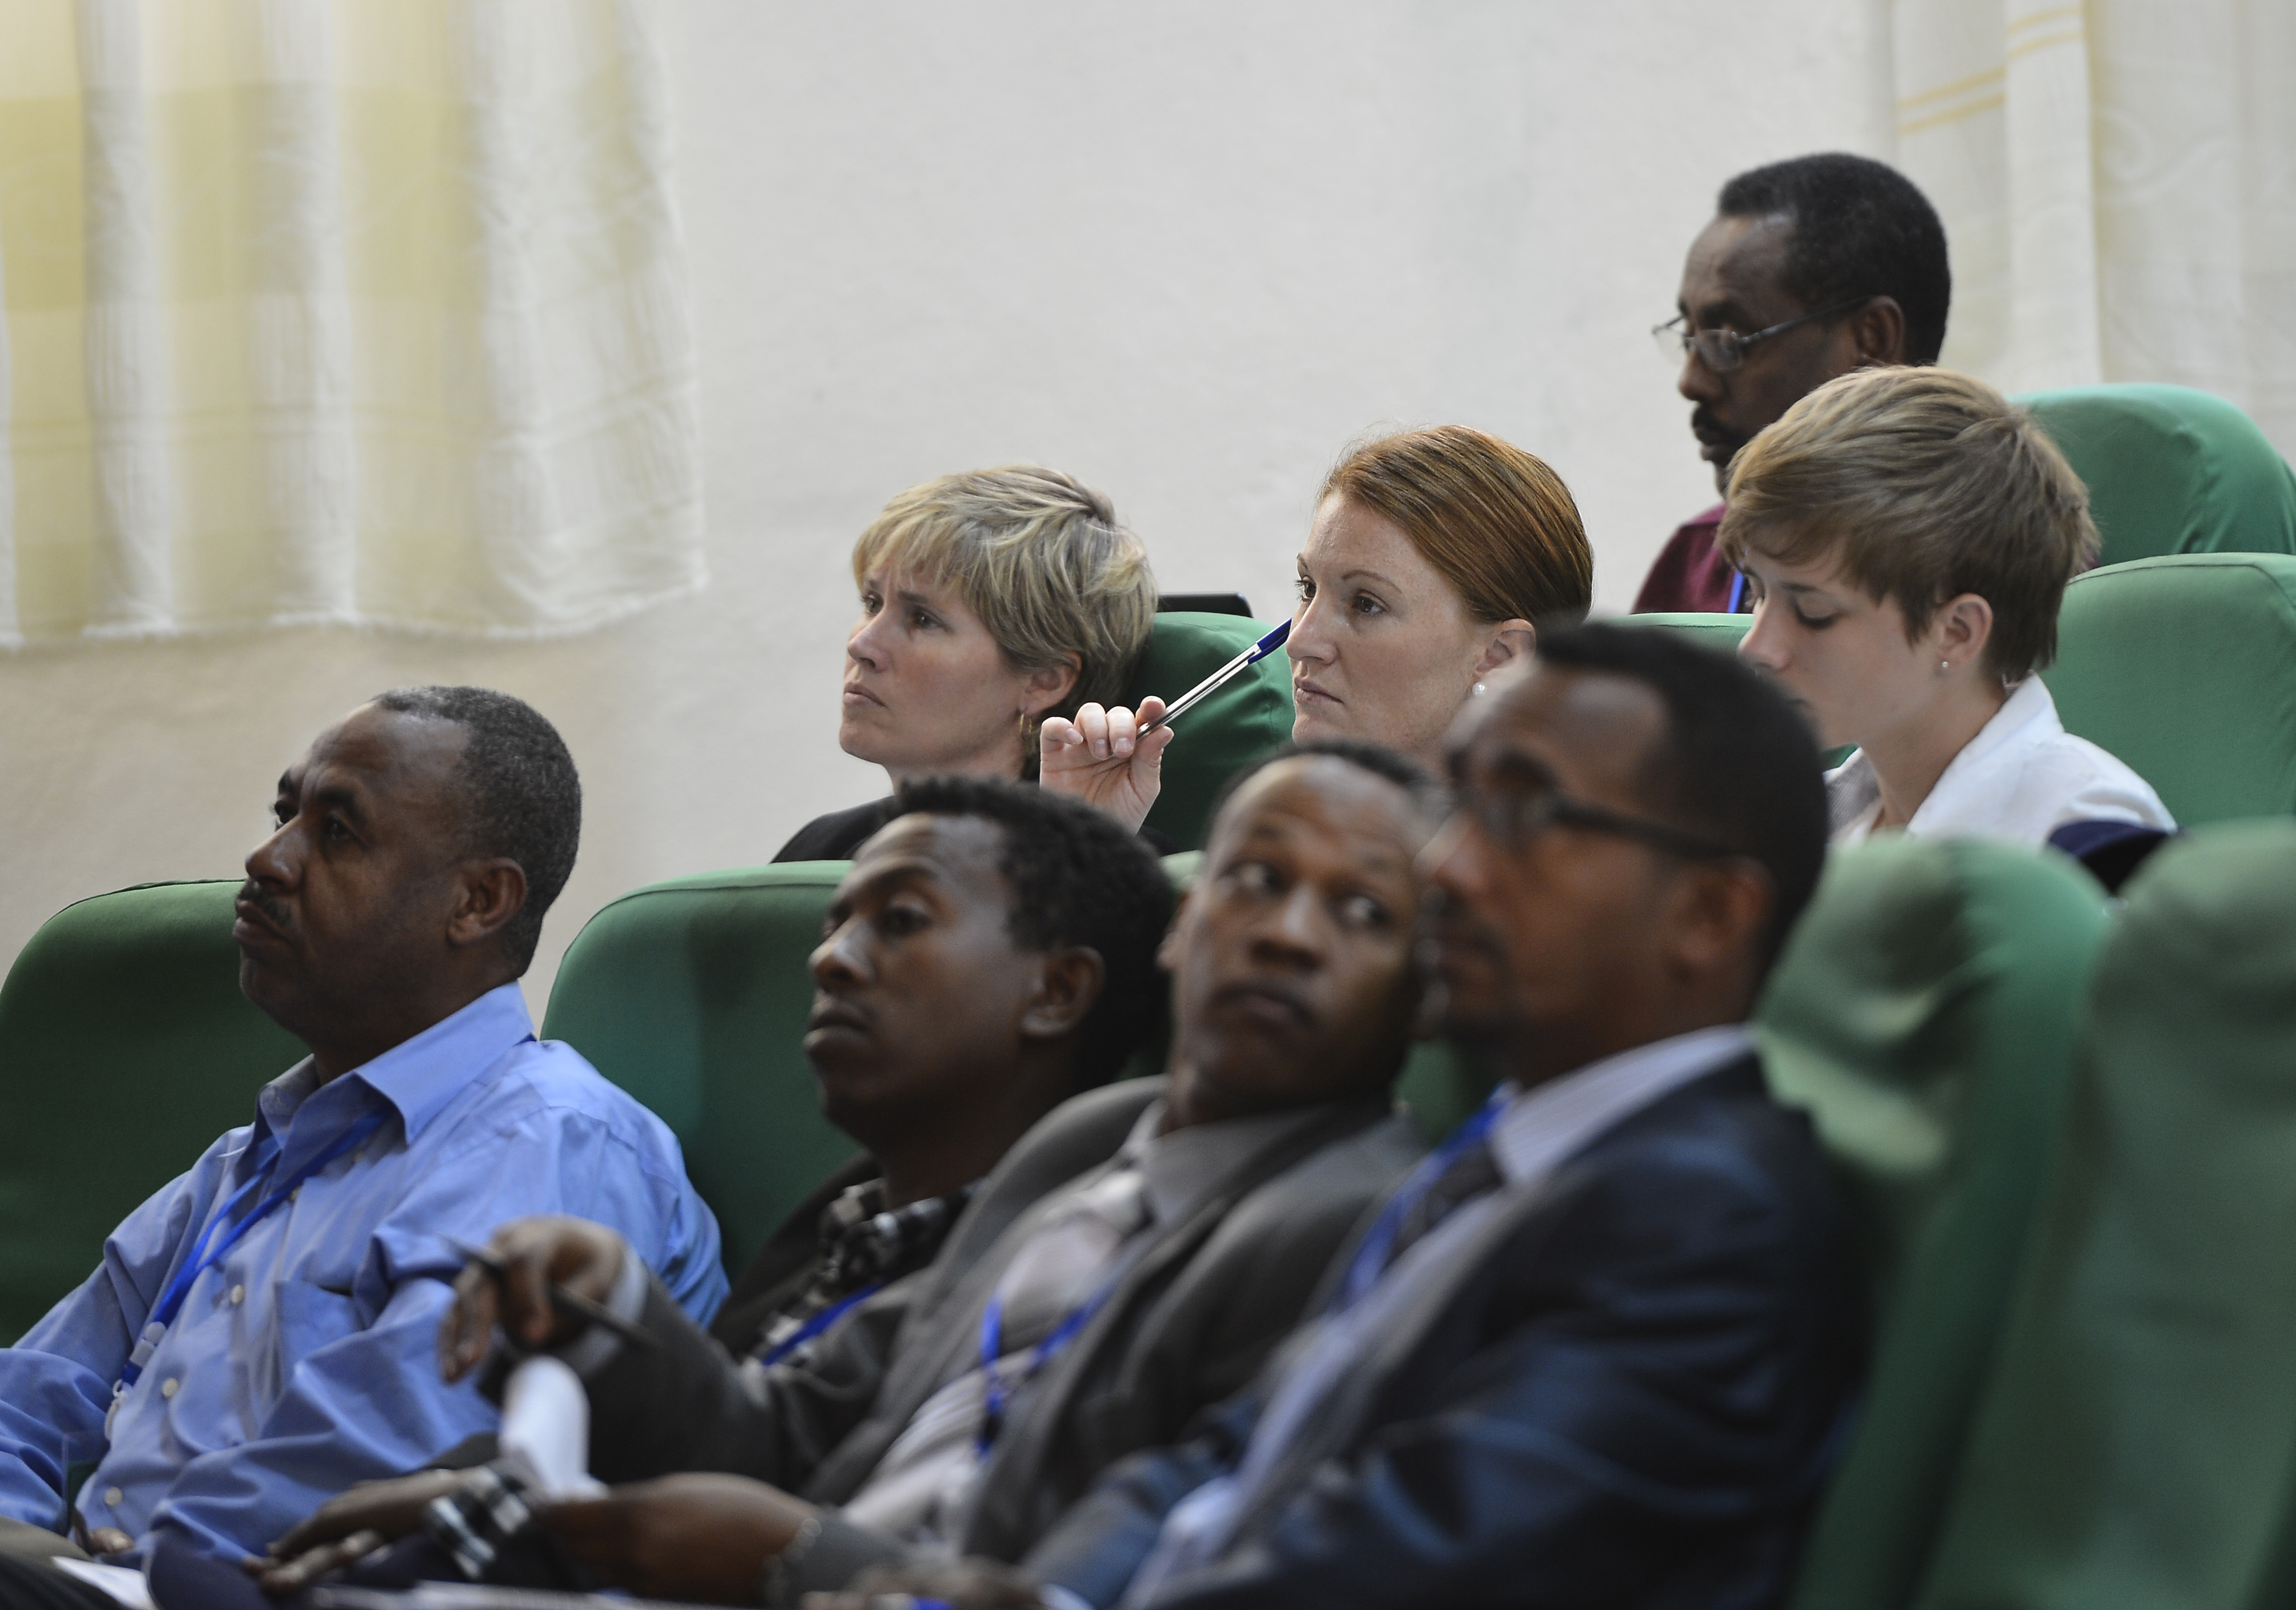 The U.S. Army 404th Civil Affairs Battalion Veterinary Cell Team, assigned to Combined Joint Task Force- Horn of Africa, listen to scientific paper presentations at the Third International Veterinary Education Conference at Haramaya University in Dire Dawa, Ethiopia, June 18, 2015. The conference brought together more than 100 East African policy makers, professors, government officials, students and international partners. (U.S. Air Force photo by. Senior Airman Nesha Humes)